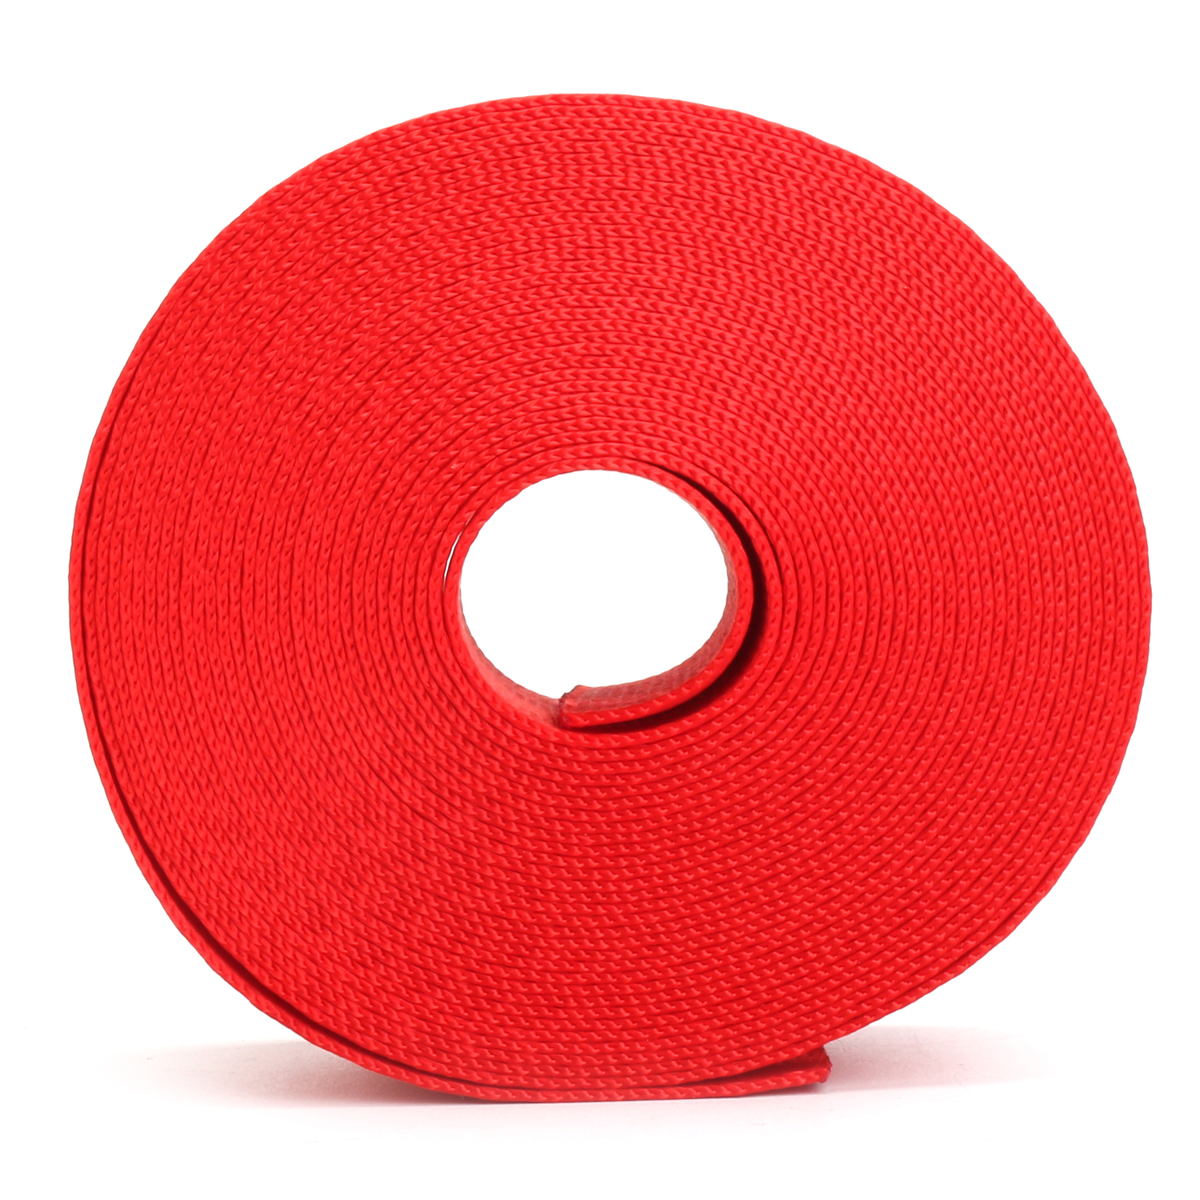 6m Red Car Seat Belt Strap Safety Webbing 2500kg Break Strength